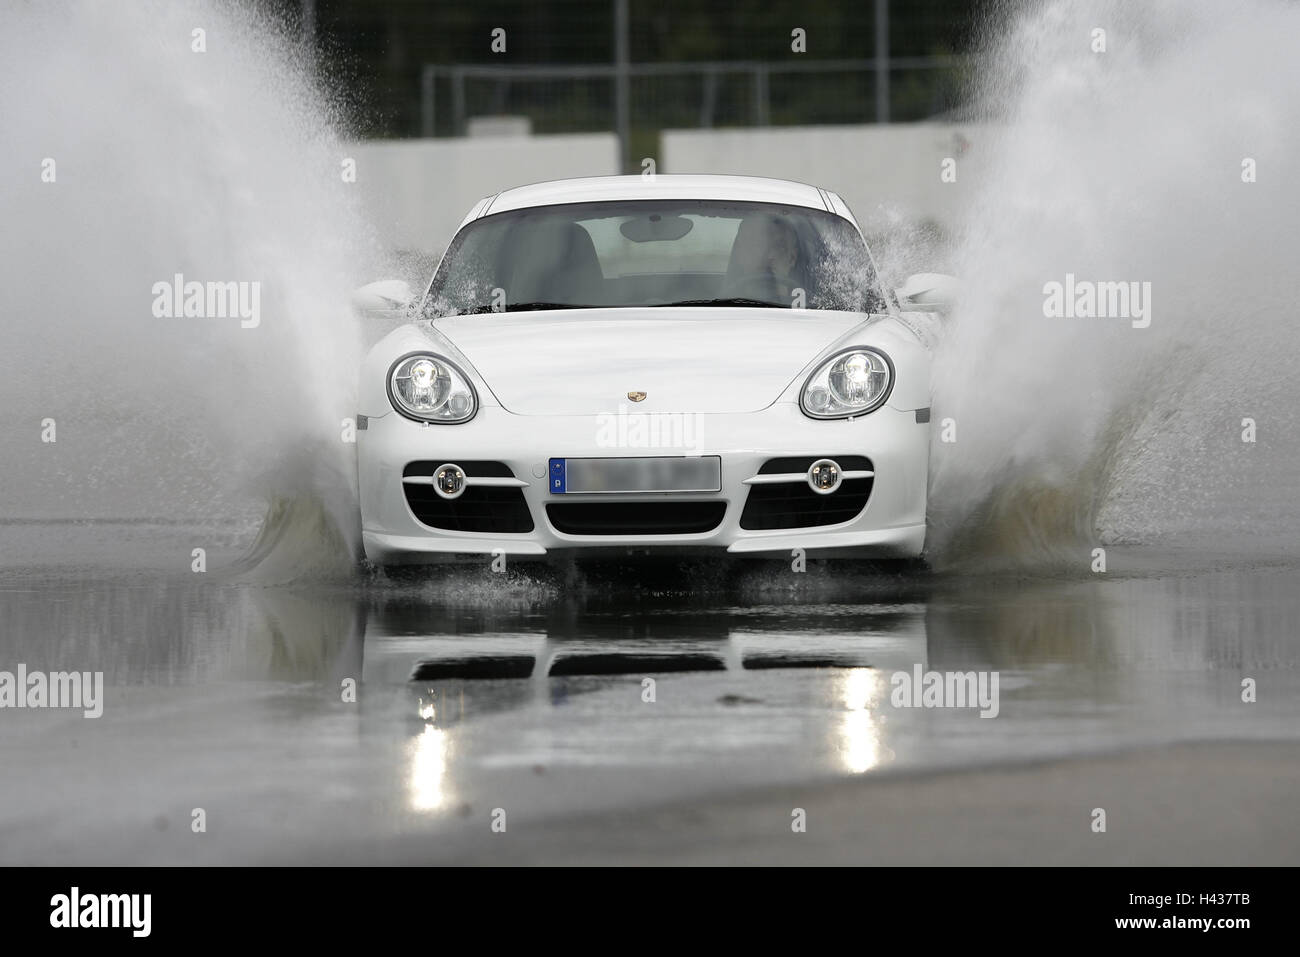 Porsche Cayman, Drive, Water, Splashes, Car, Outside, Porsche Cayman